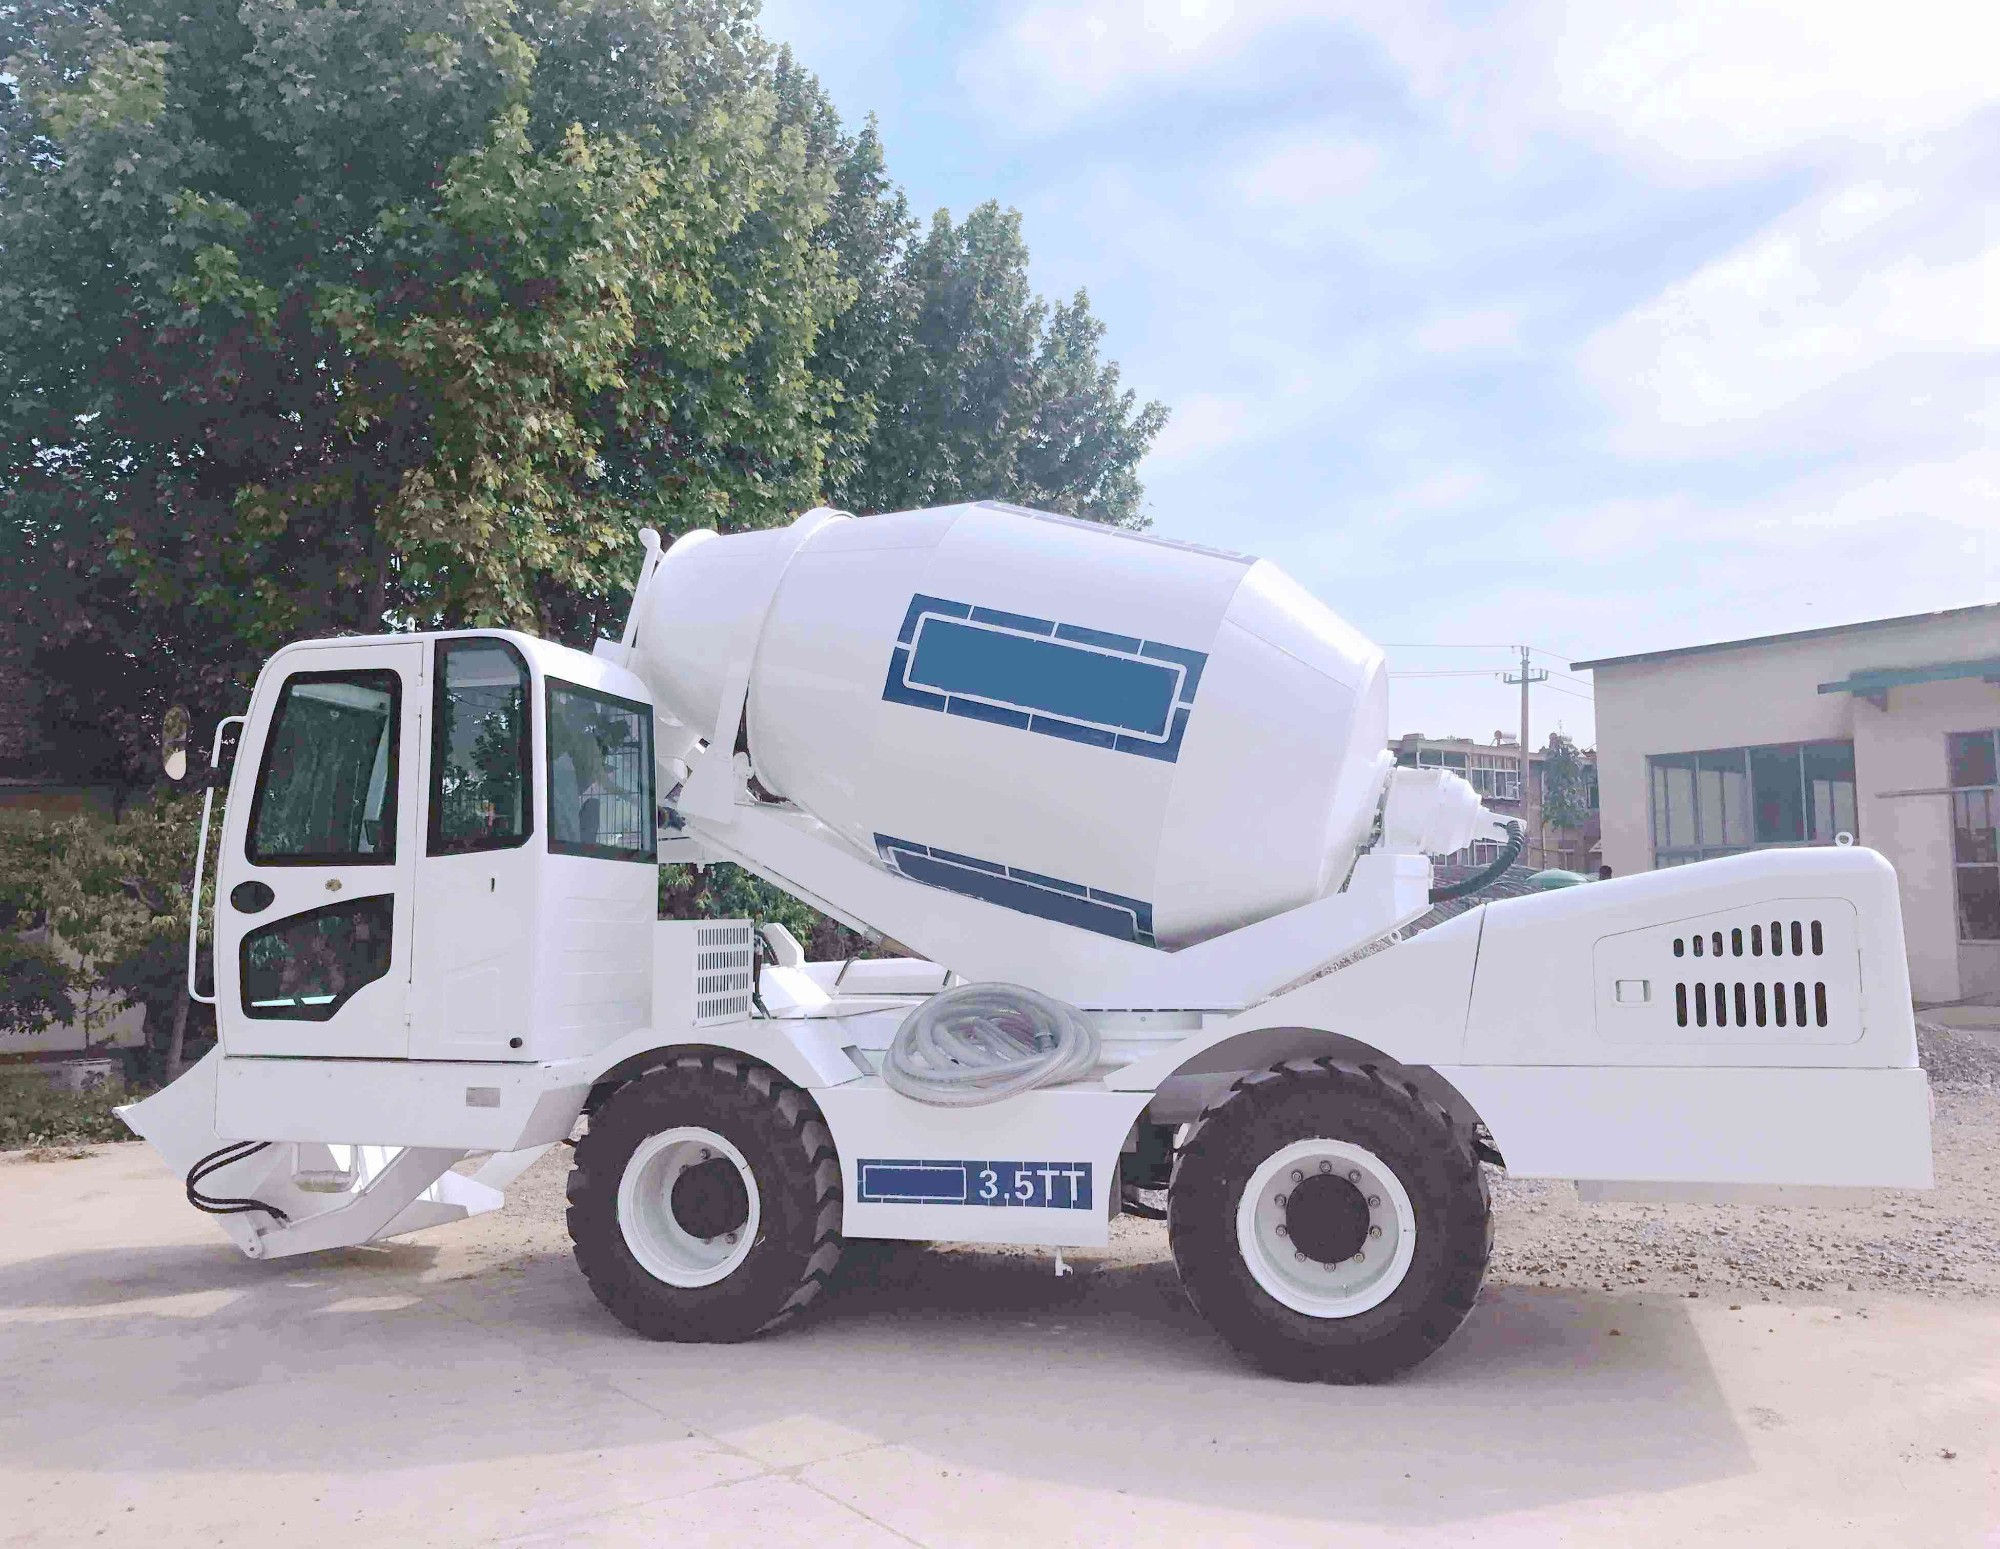 Sales Self Loading Concrete Mixer Price In Kazakhstan, Buy Self Loading Concrete Mixer Price In Kazakhstan, Self Loading Concrete Mixer Price In Kazakhstan Factory, Self Loading Concrete Mixer Price In Kazakhstan Brands